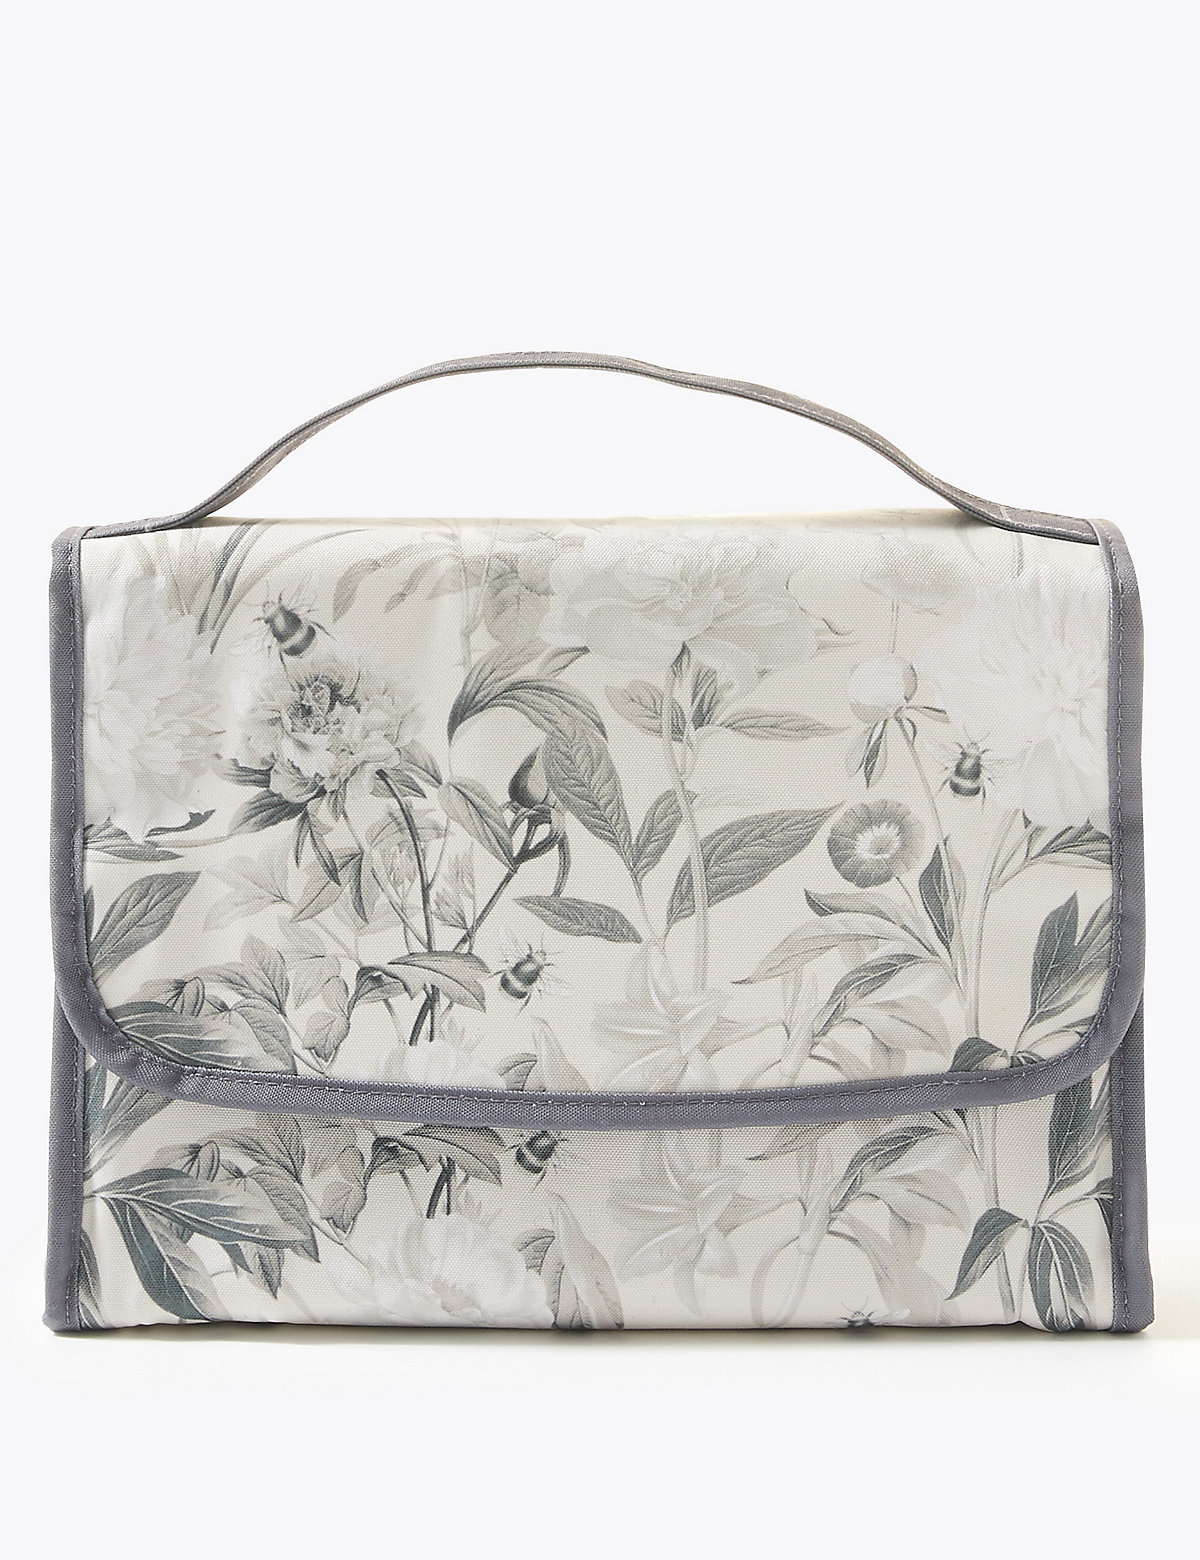 Royal Jelly Bee Hanging Toiletry Bag